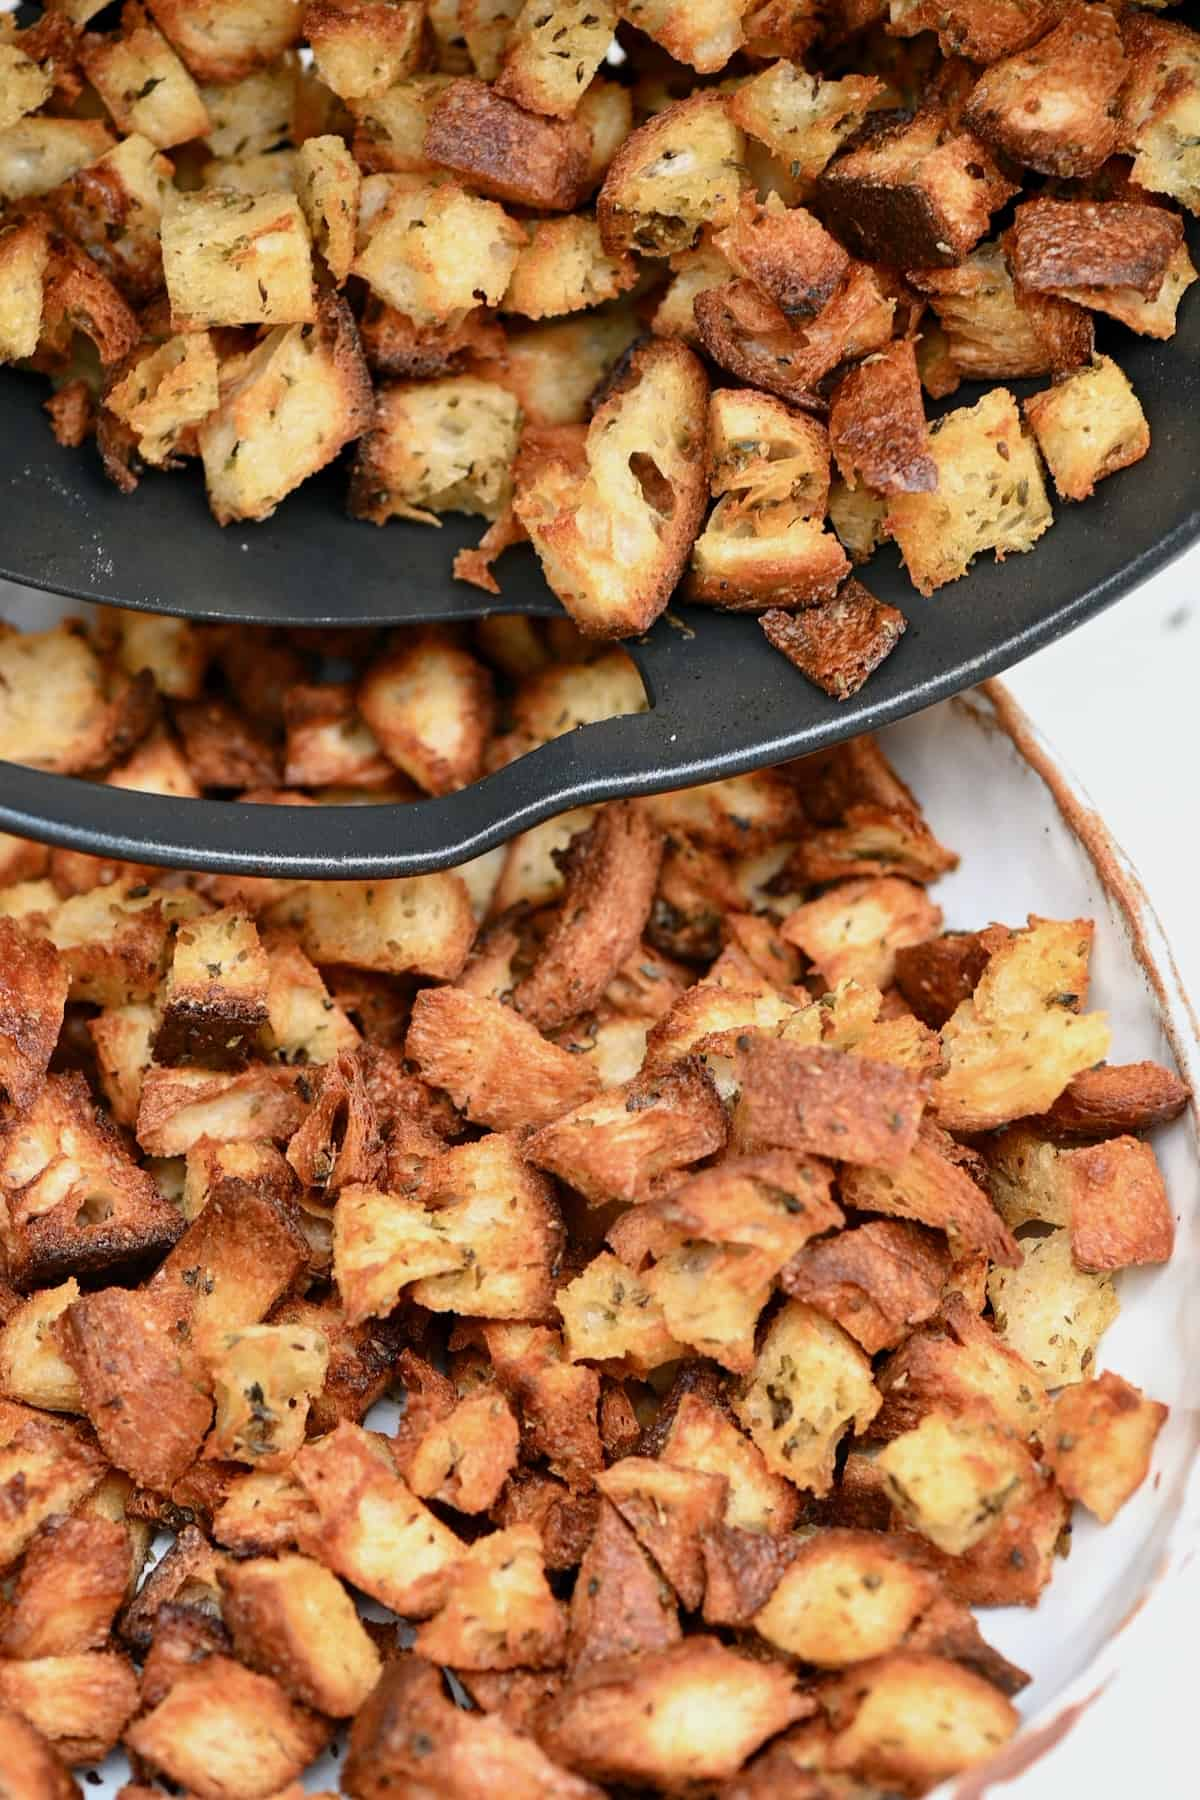 Placing homemade croutons in a bowl